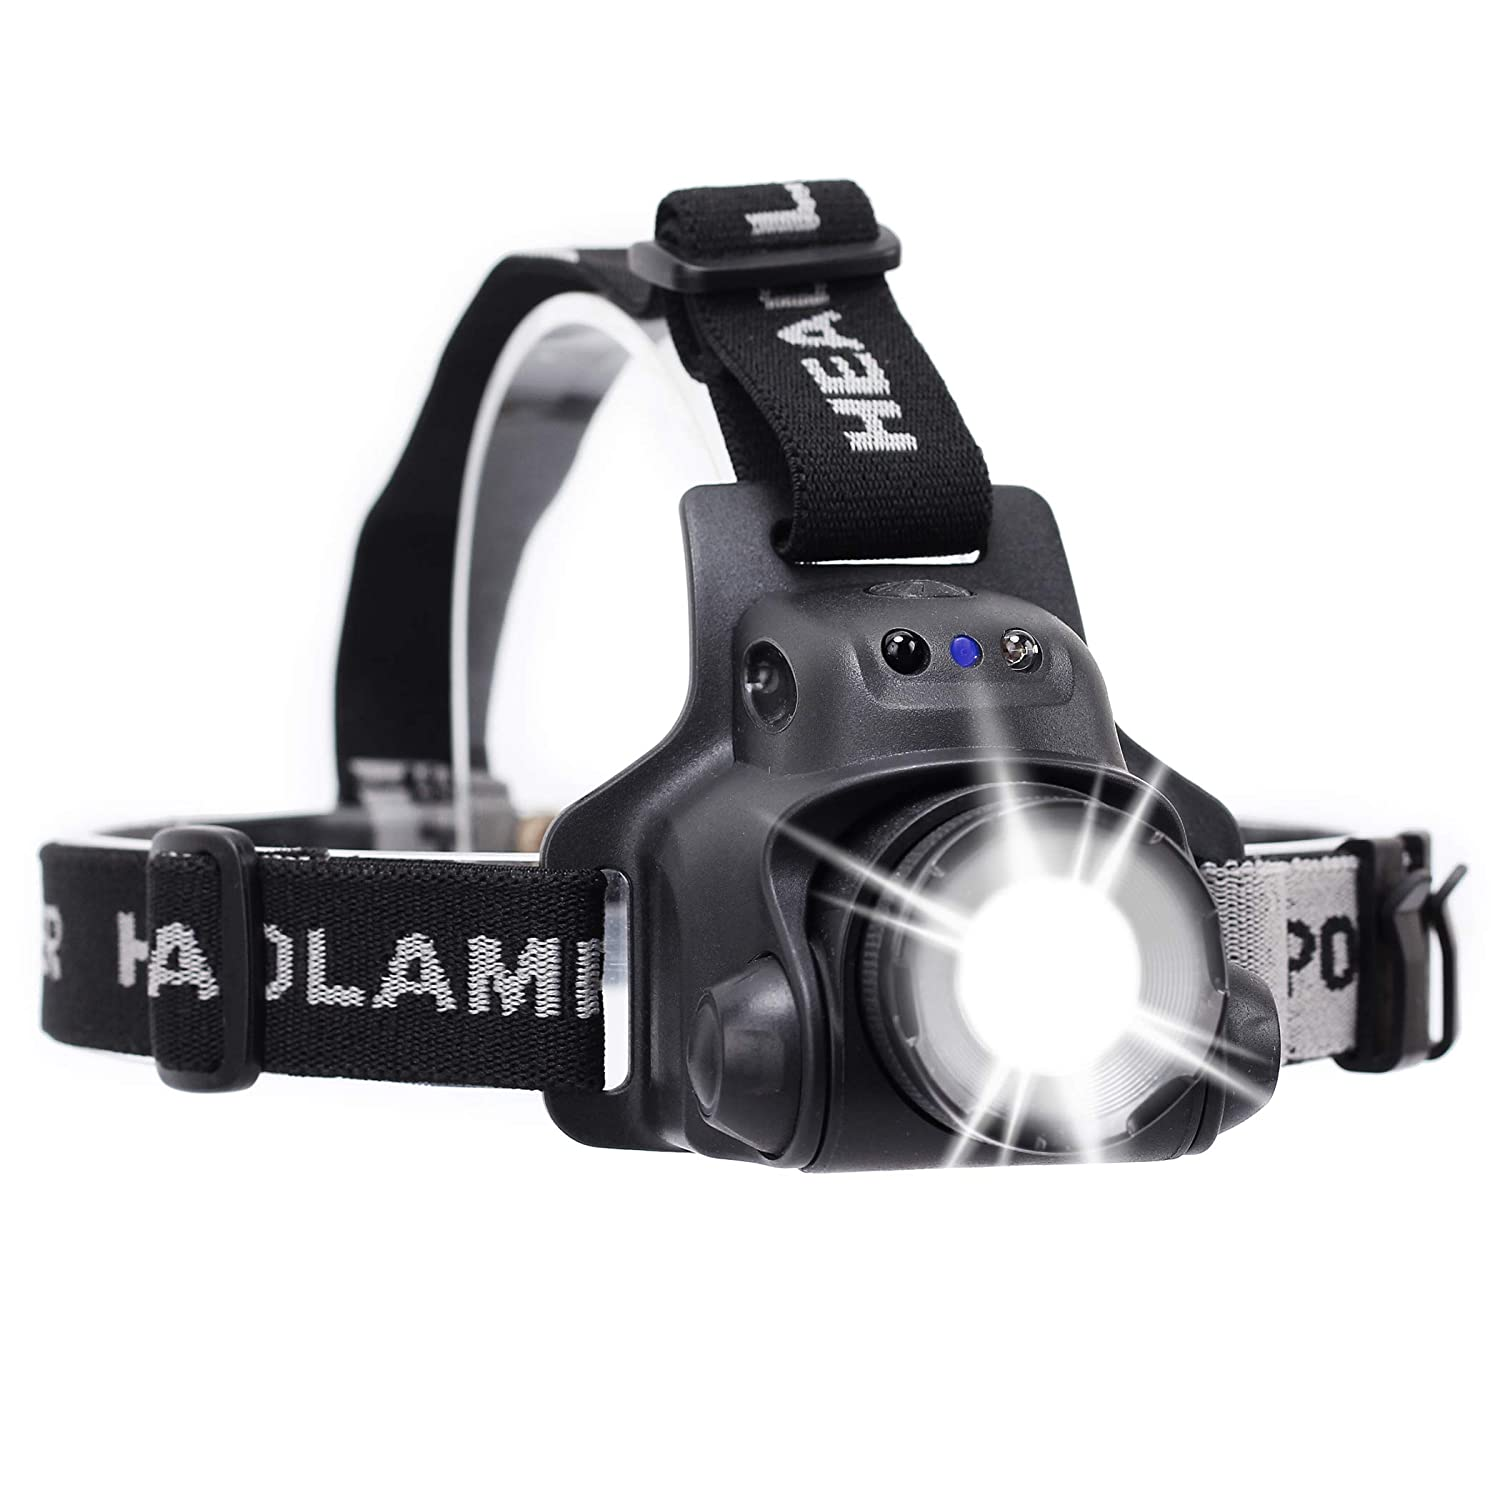 TOS Headlamp Adjustable Focal Length and Adjustable Angle Headlight Super Bright Waterproof Flashlight Intelligent Induction Headlamp Source Focusing Searchlight Head Lights for Camping Hiking Outdoo